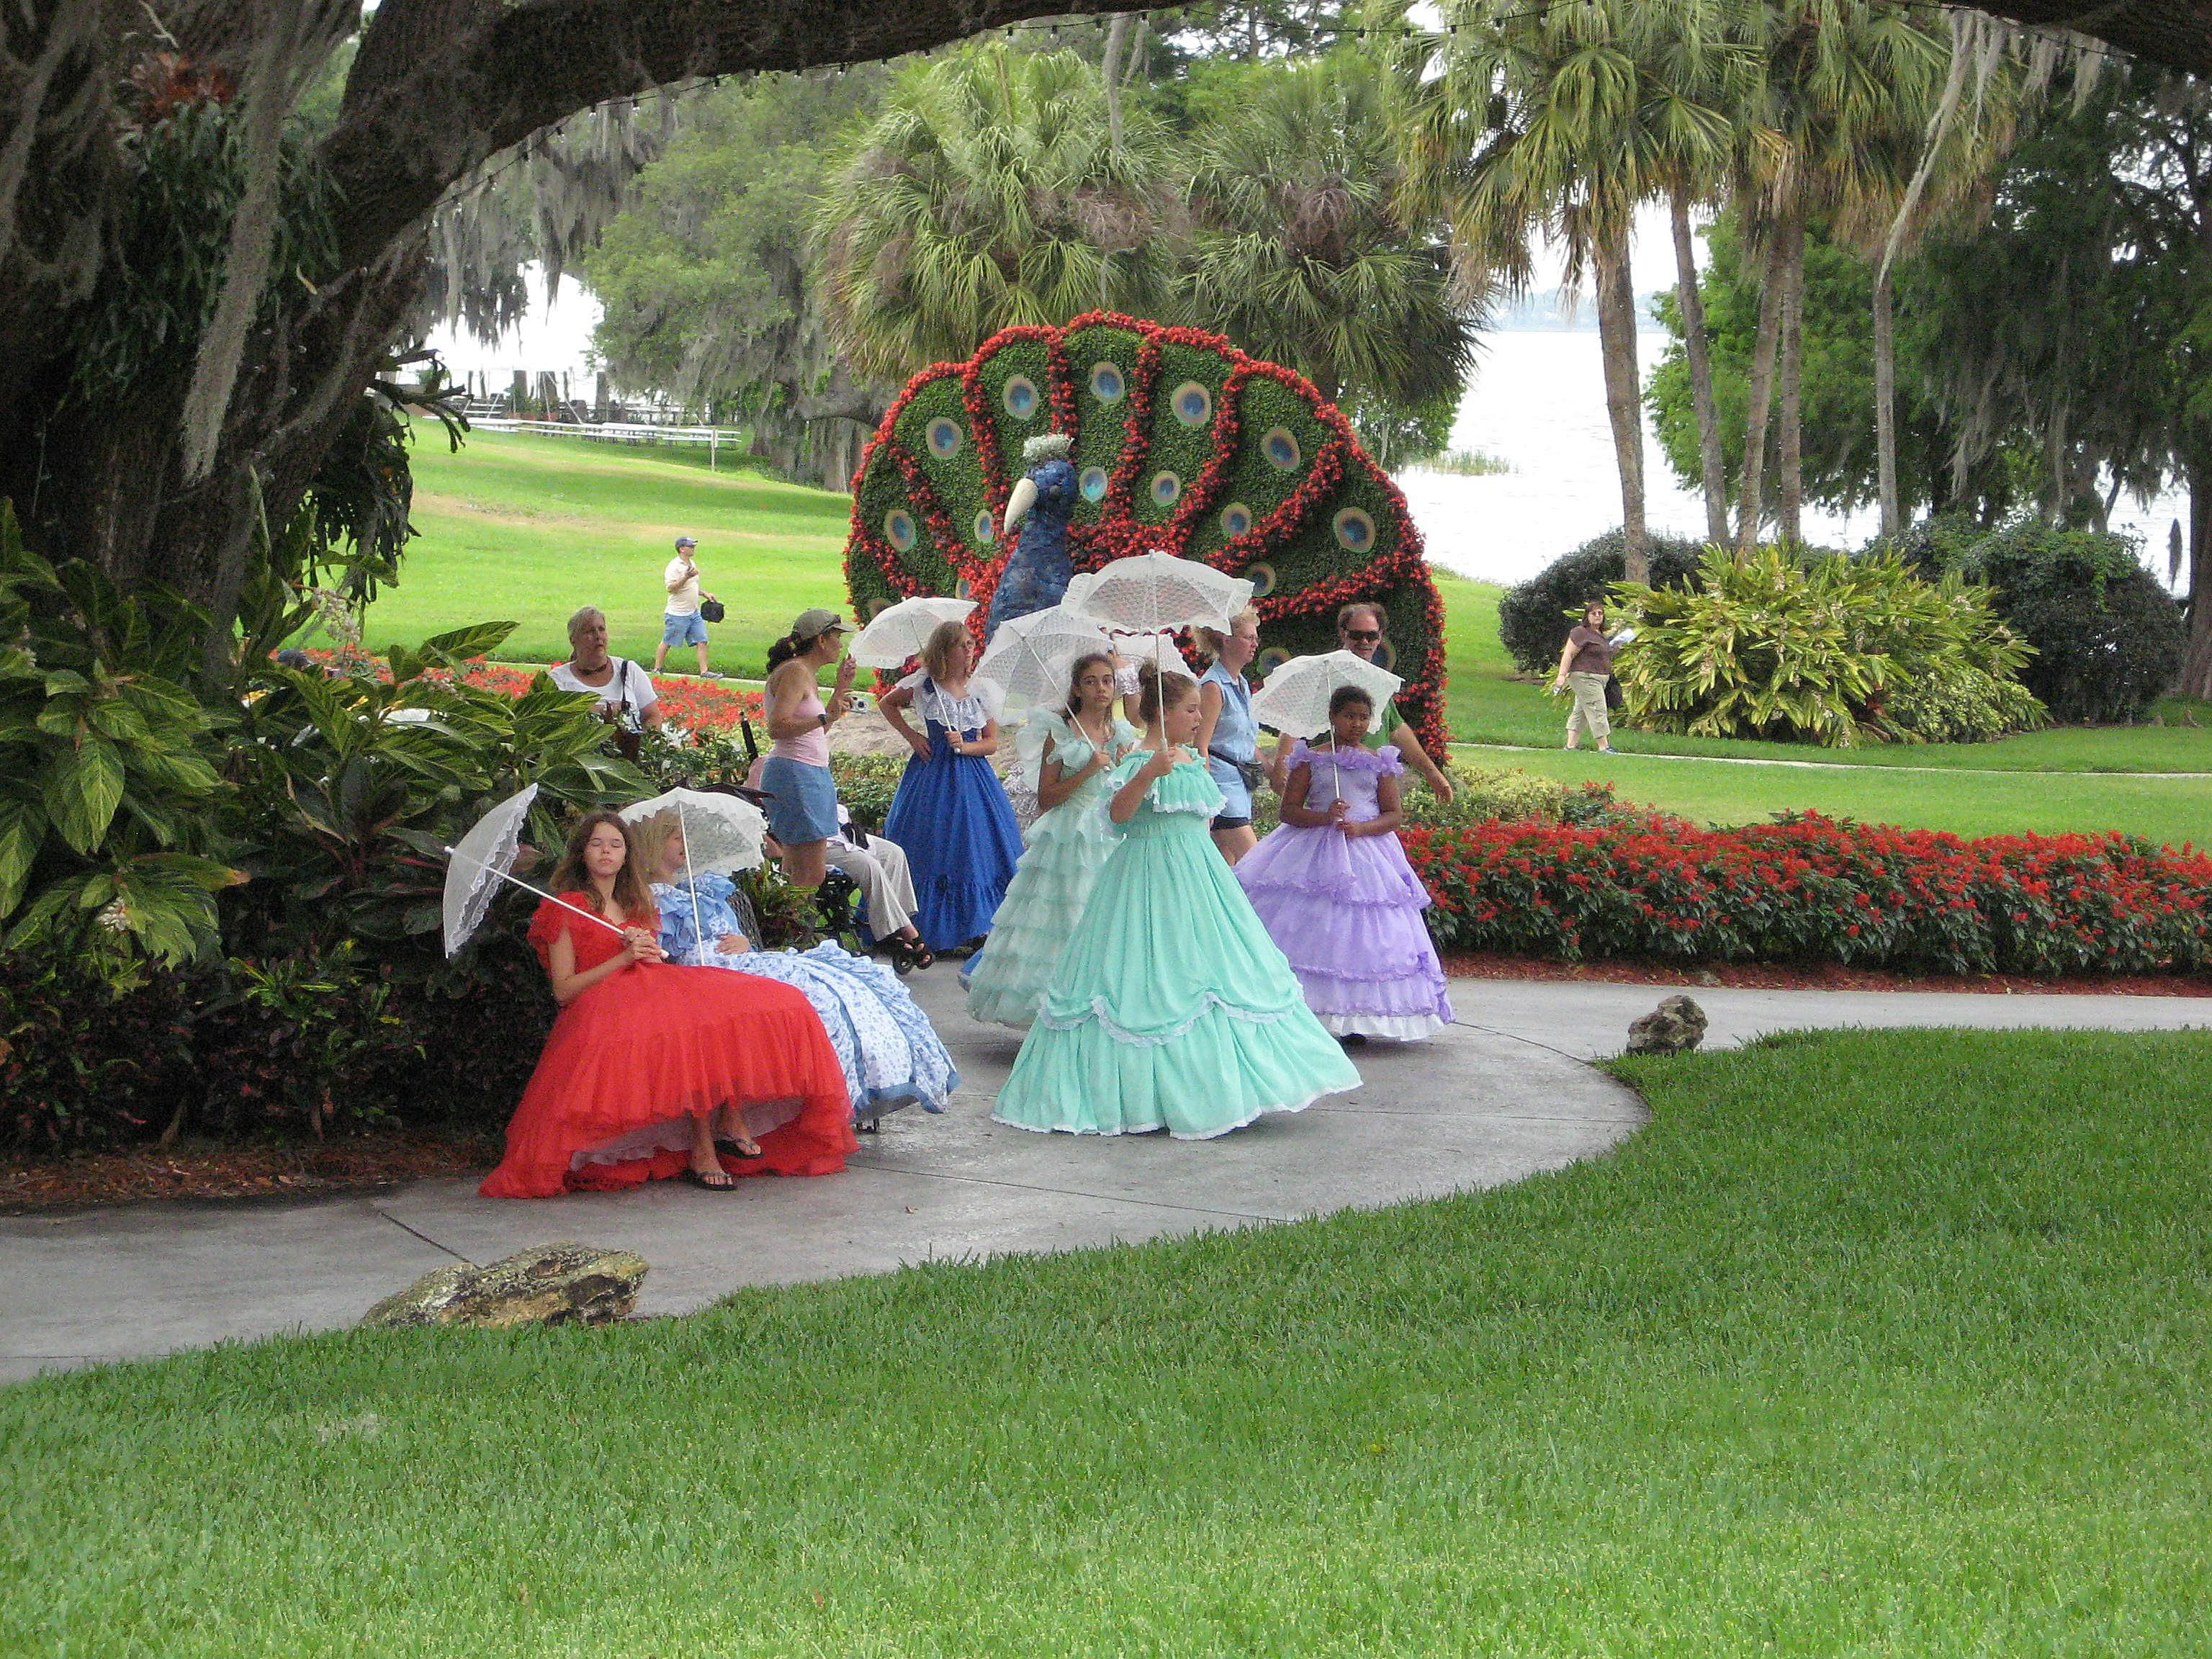 Aaa Insurance Florida >> Cypress Gardens - Closed Florida Theme Park